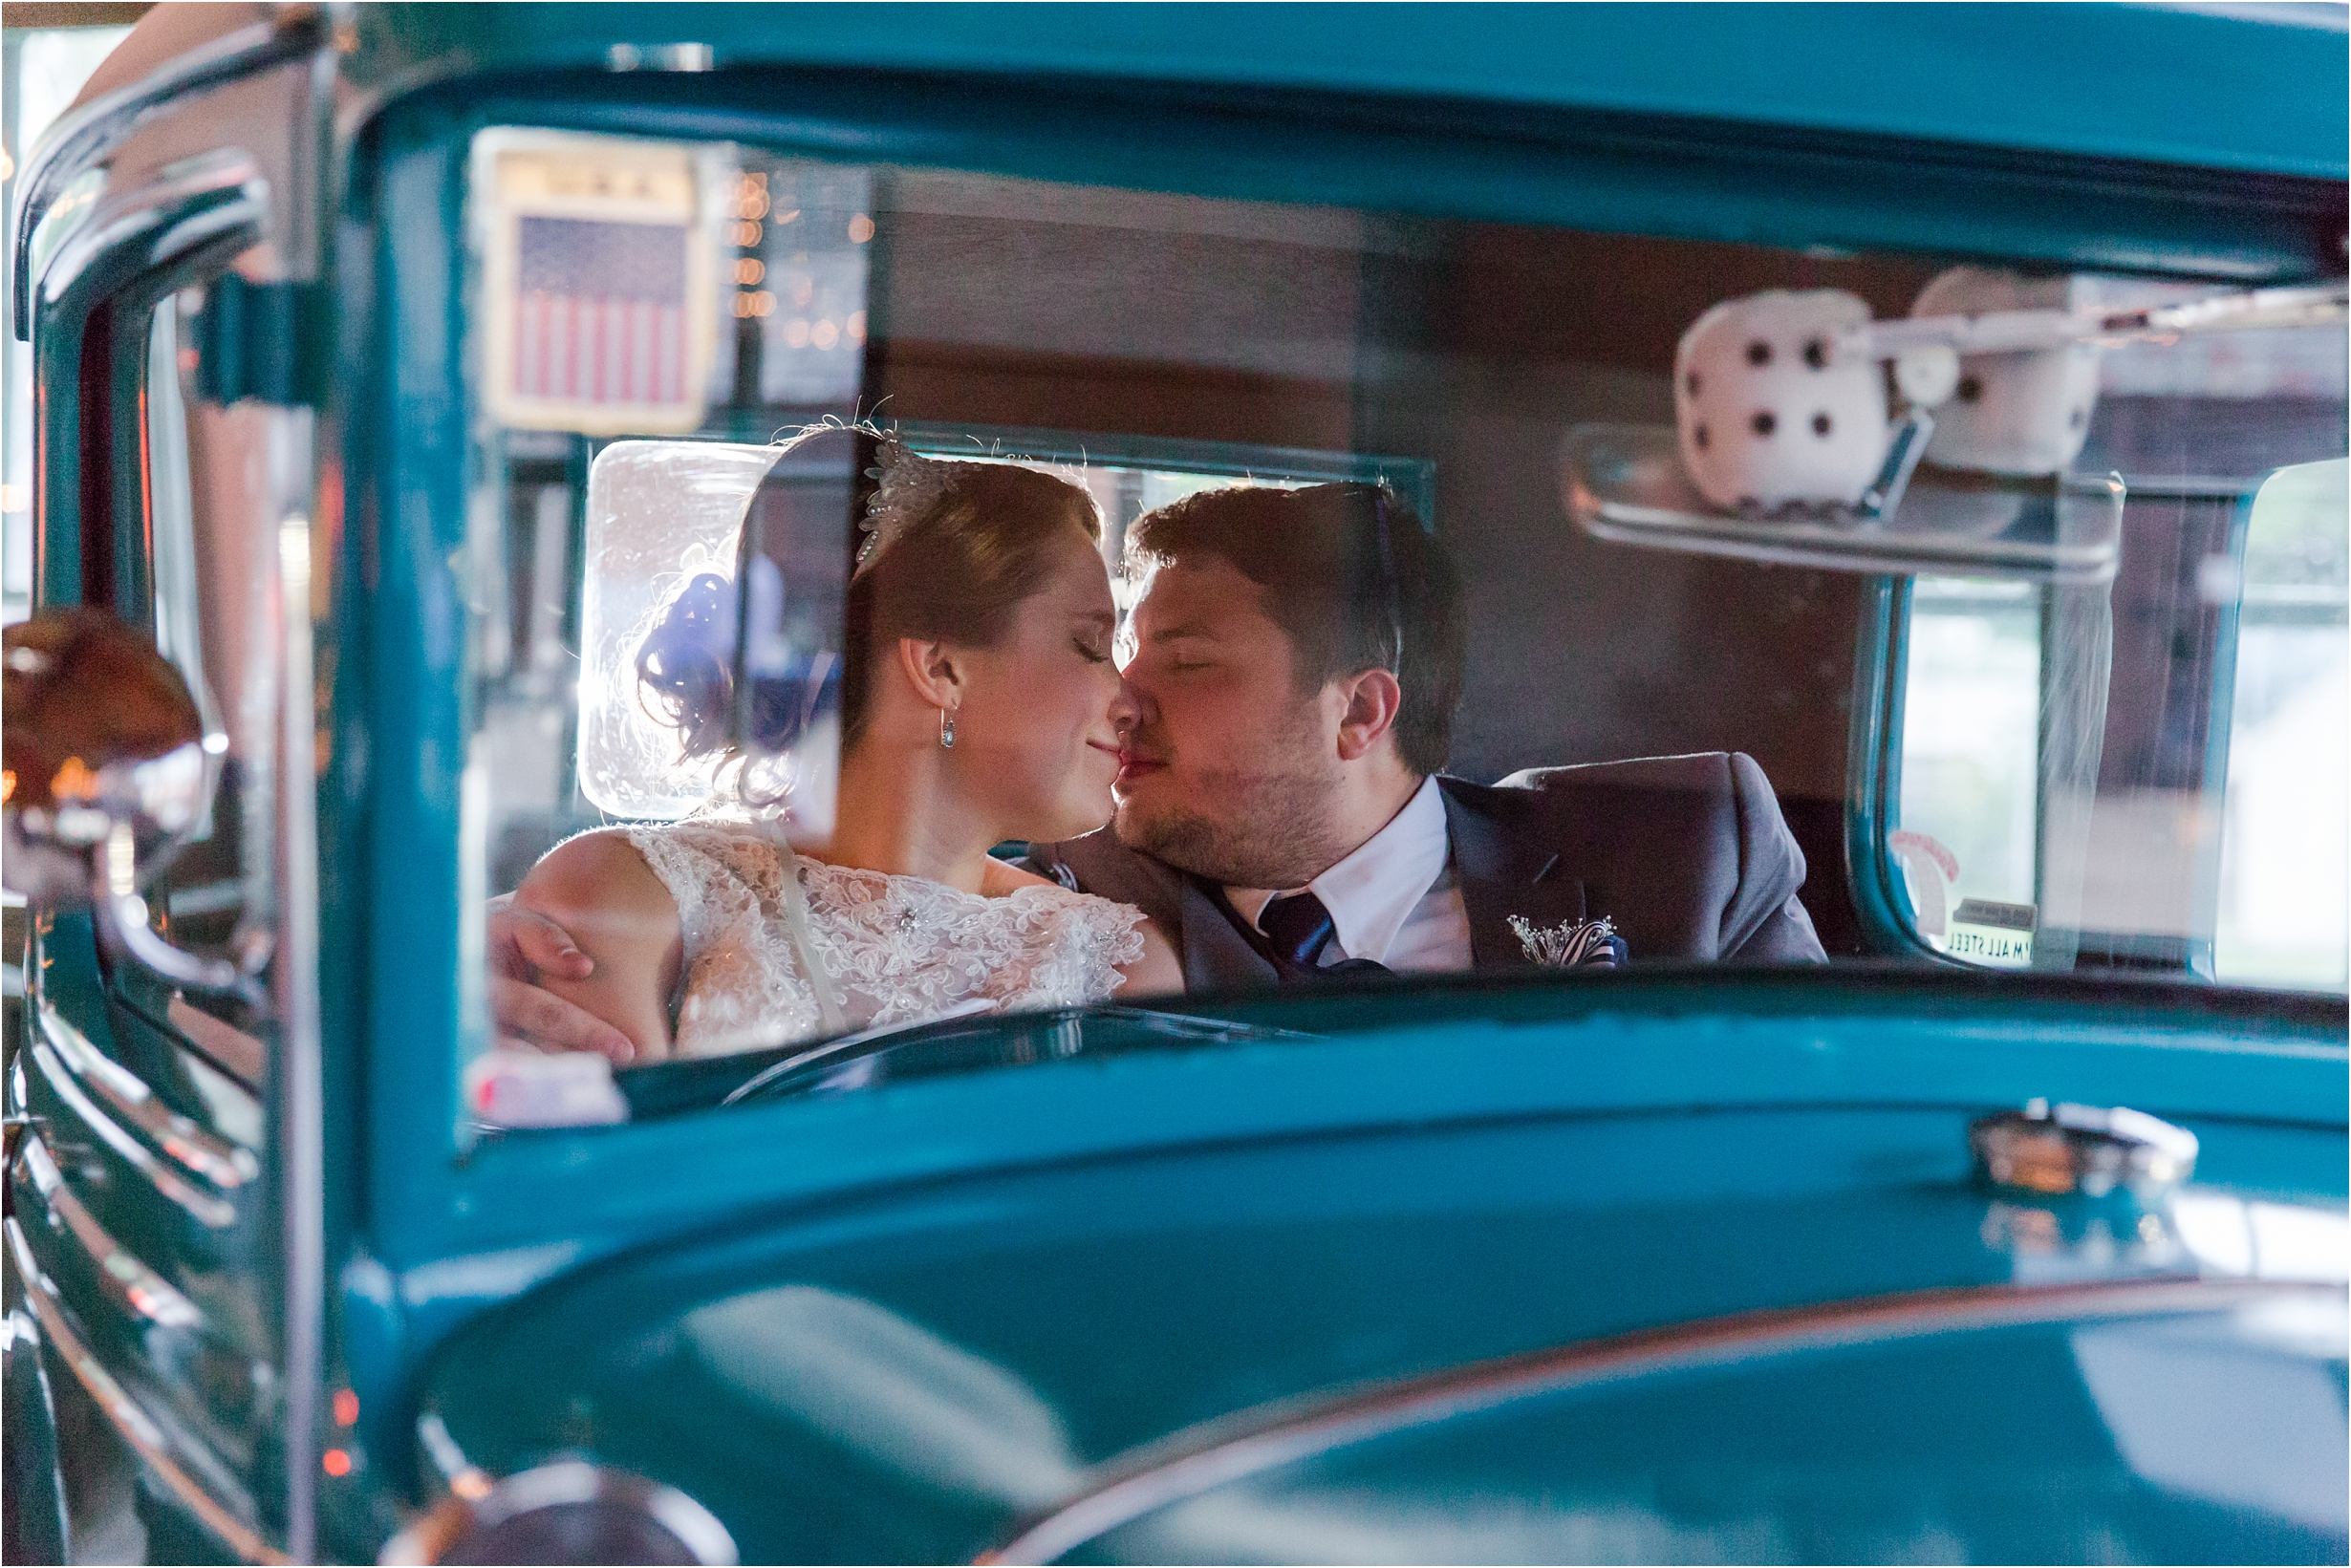 romantic-timeless-candid-wedding-photos-at-the-packard-proving-grounds-by-courtney-carolyn-photography_0009.jpg